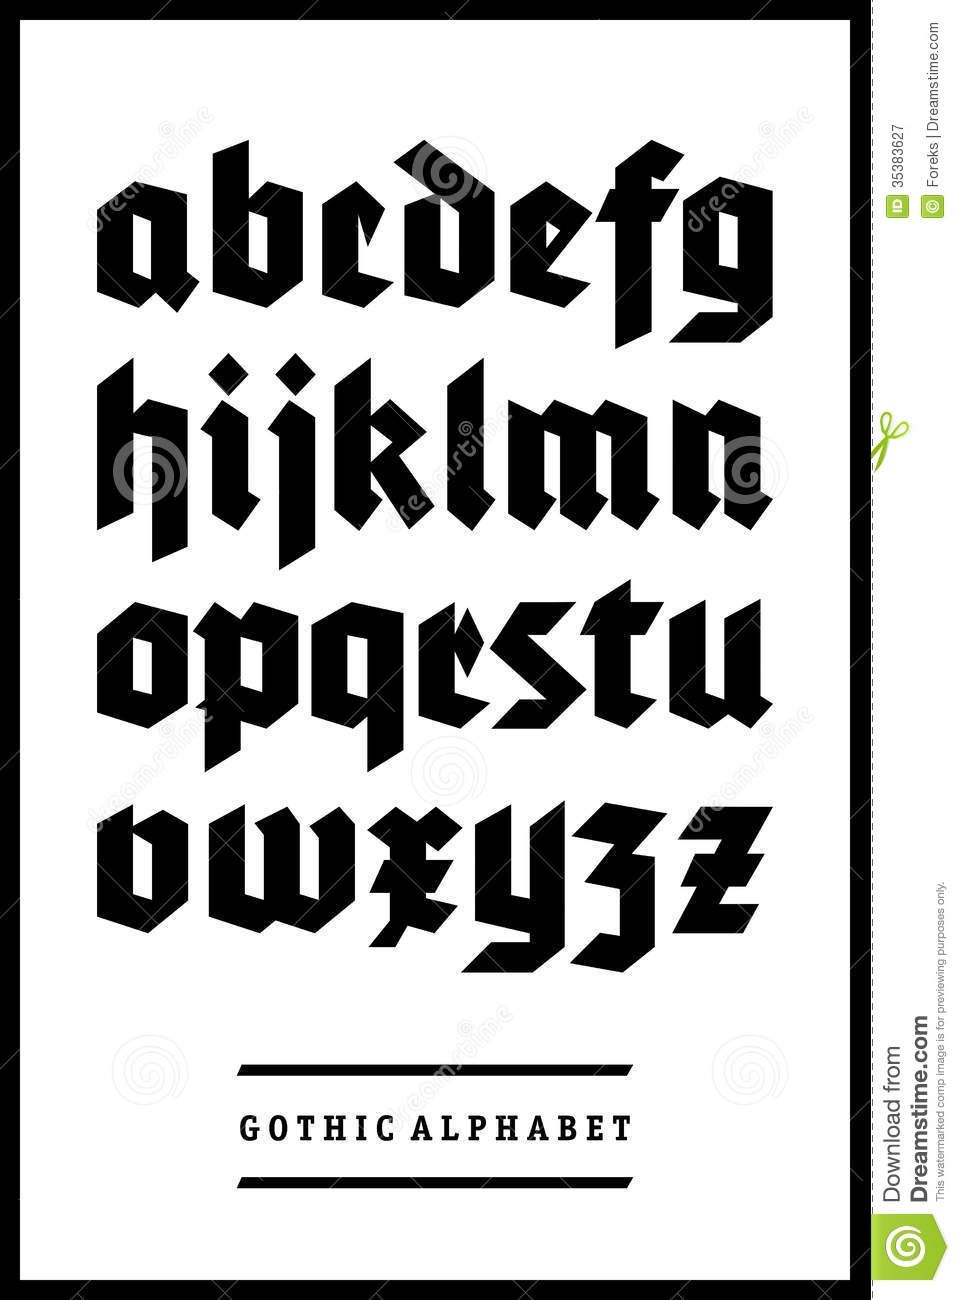 German Gothic Font